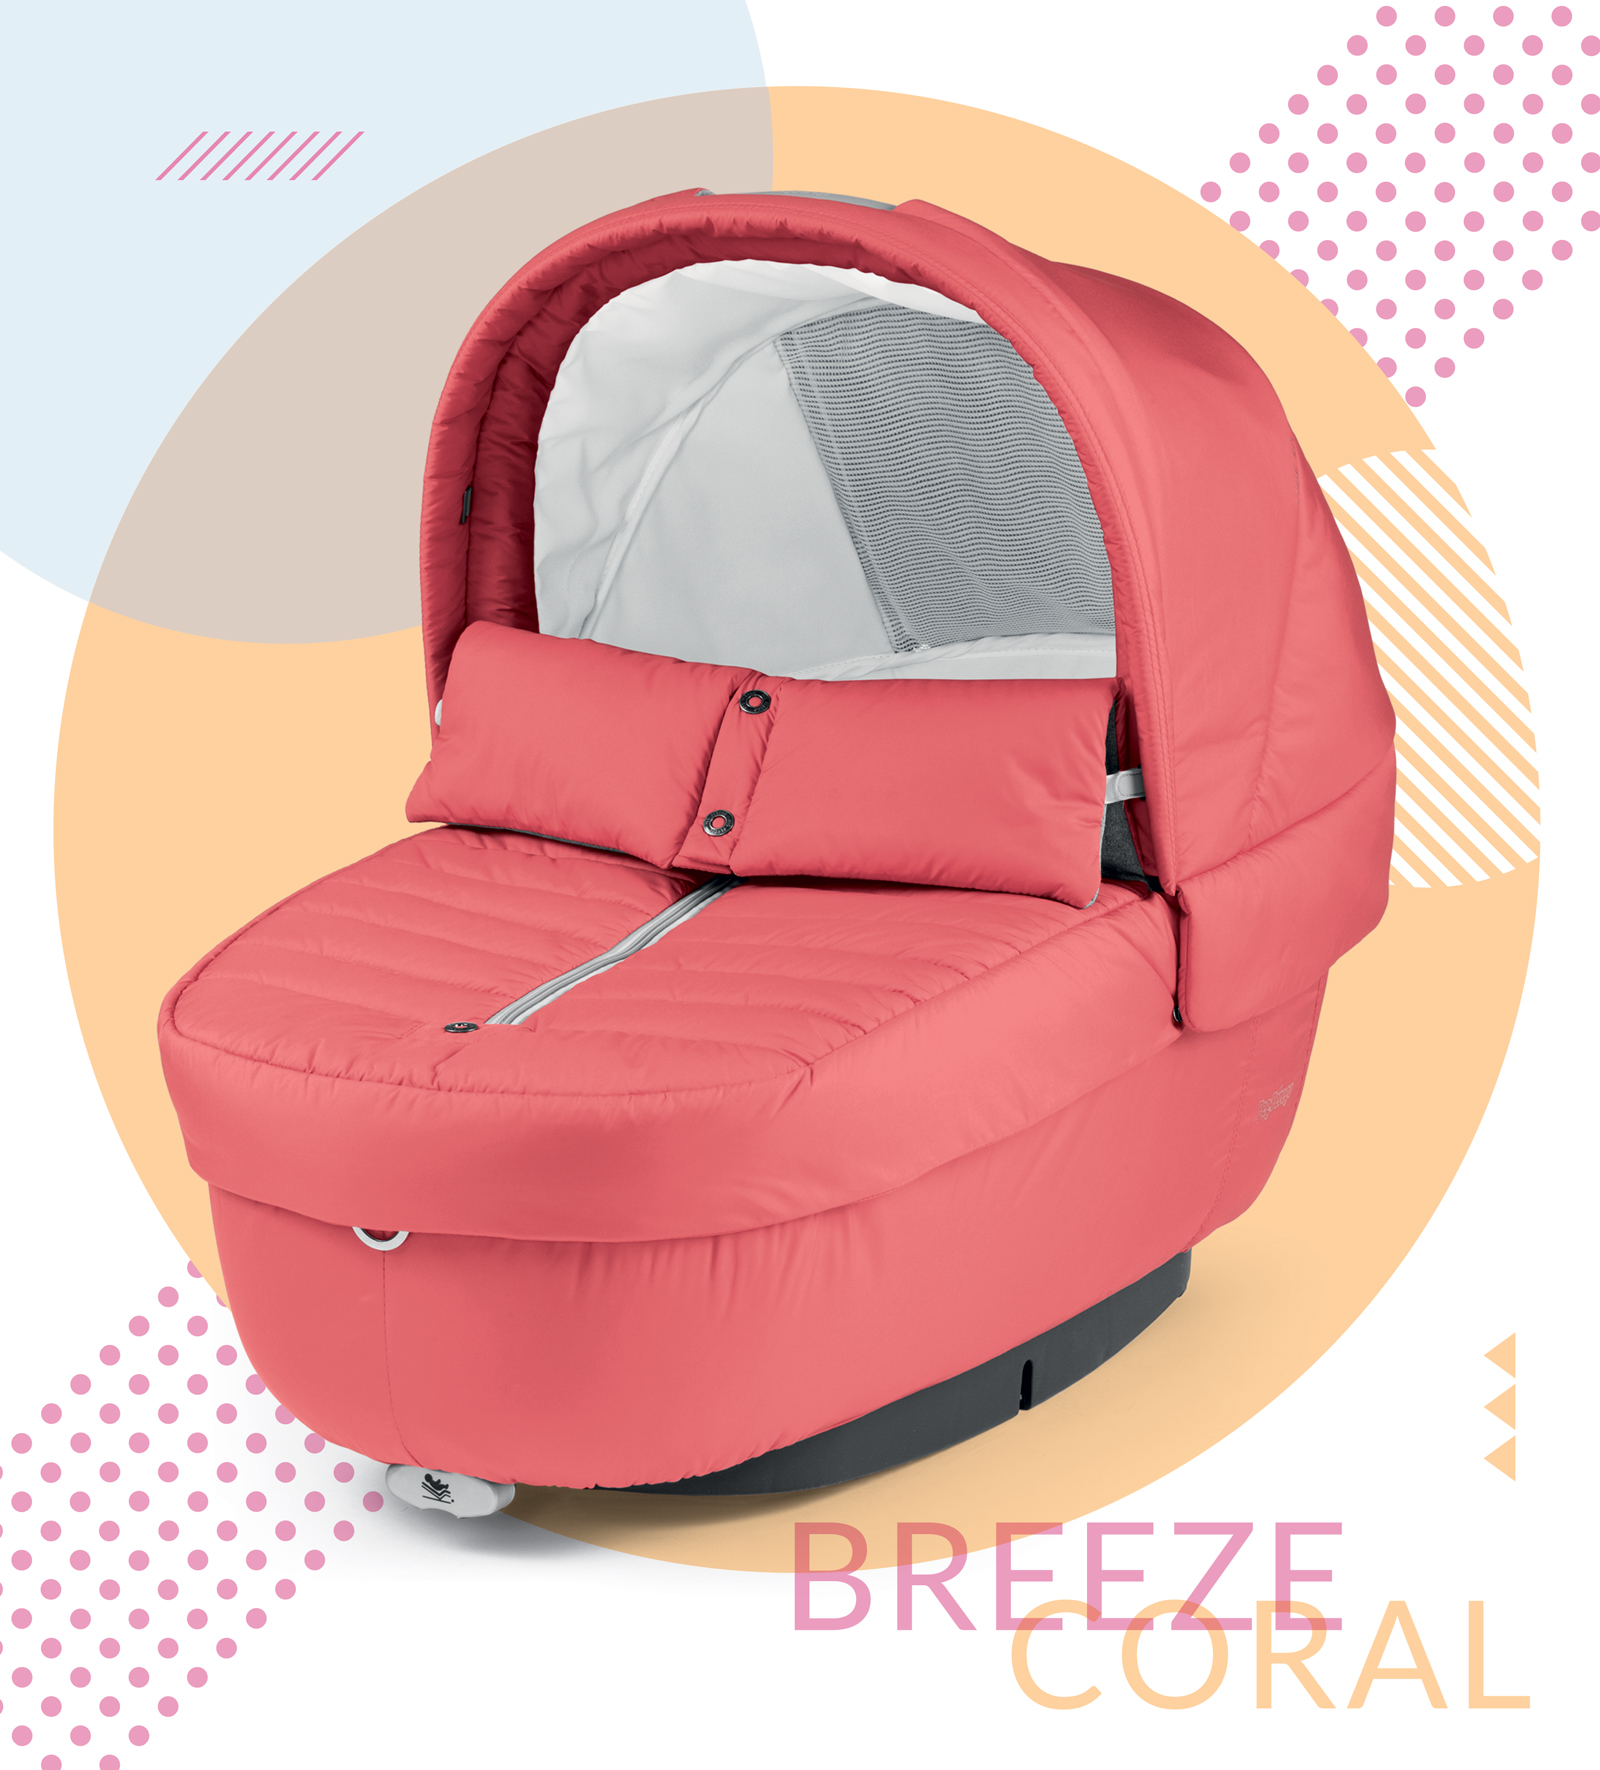 Navetta Elite Breeze Coral Peg Perego